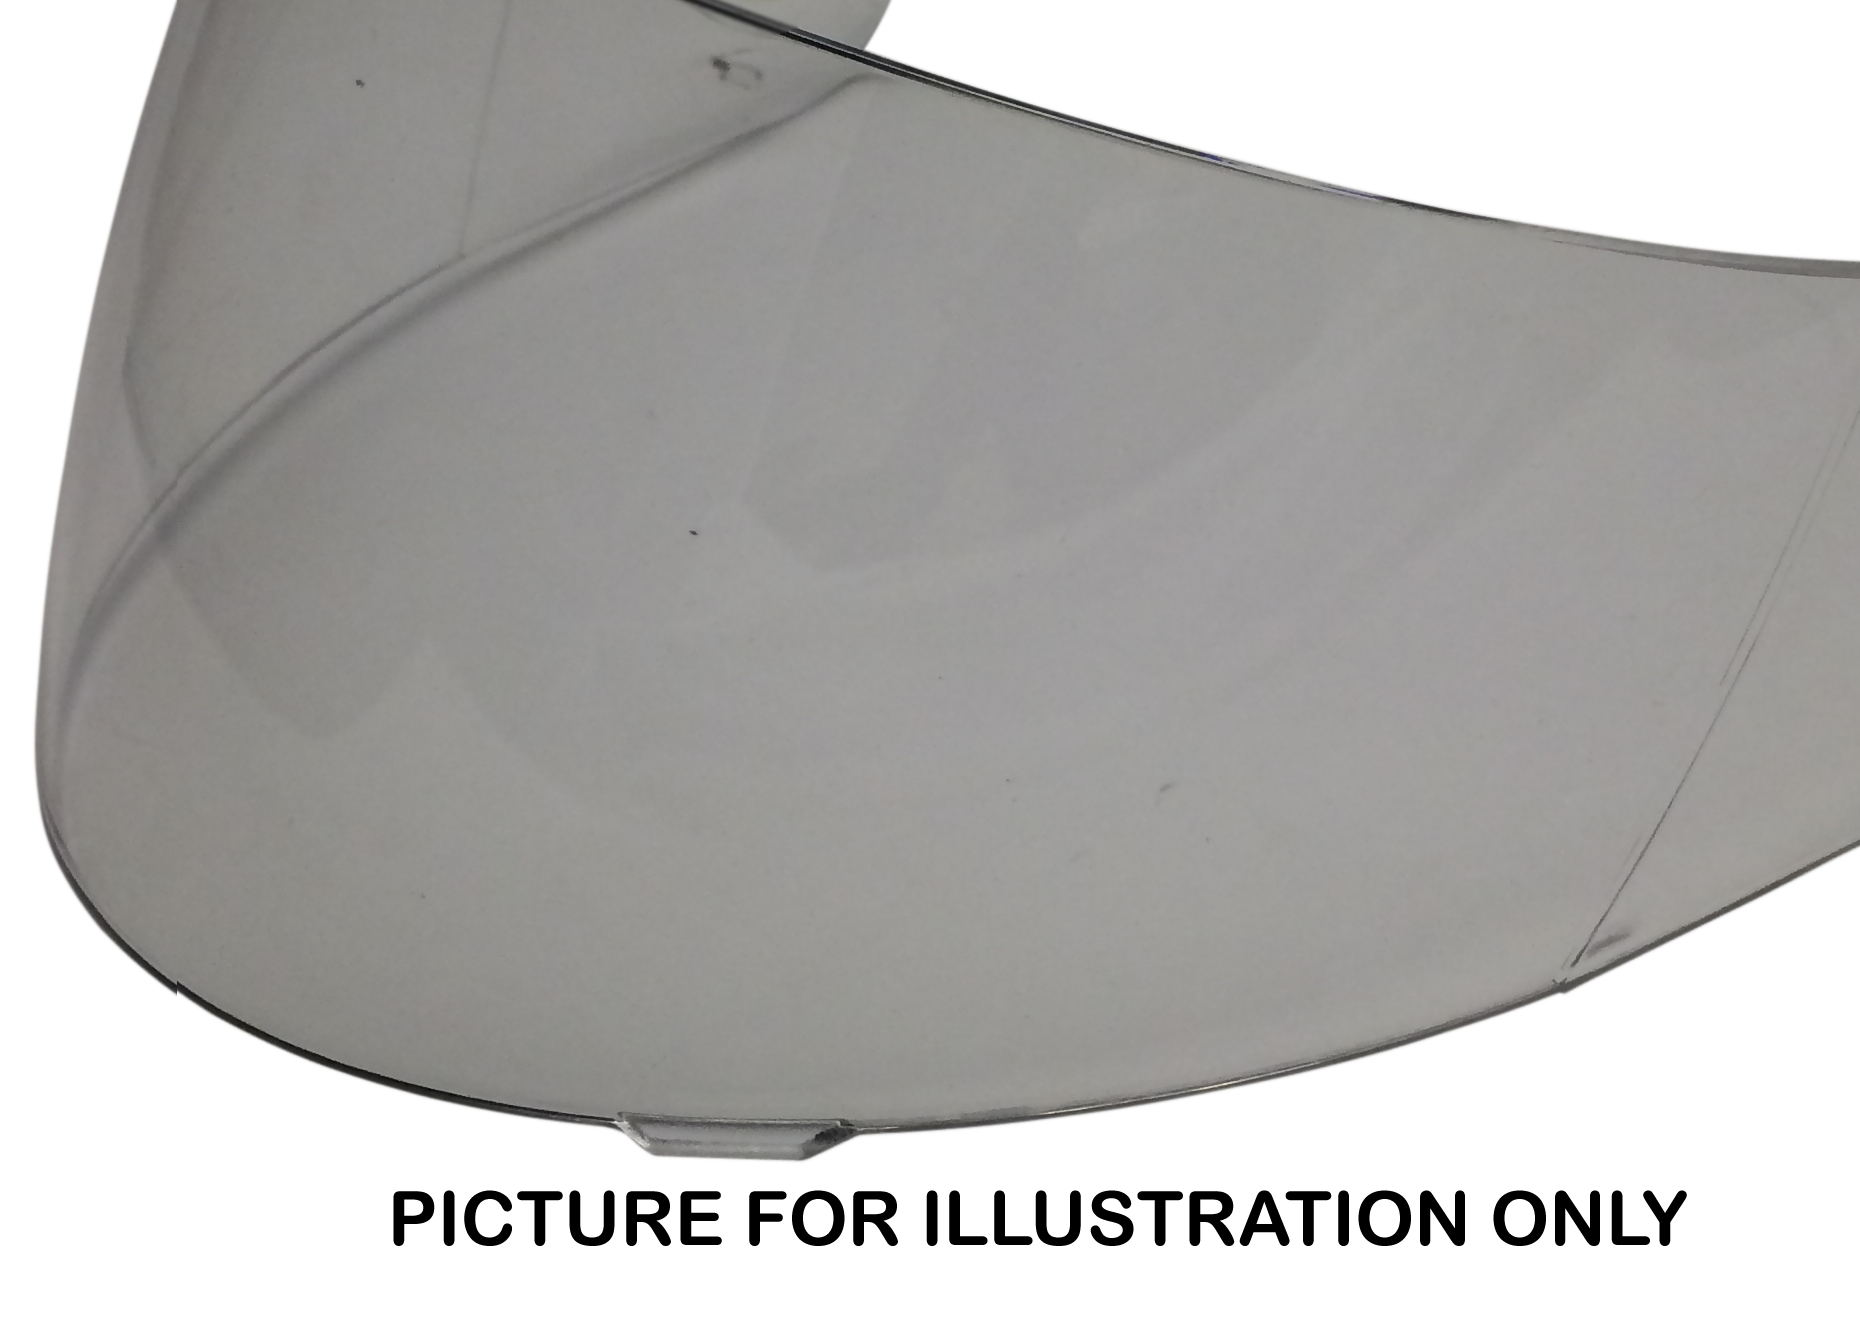 LS2 FF370 FF325 STROBE CIVIK EASY SHADOW REPLACEMENT CLEAR VISOR